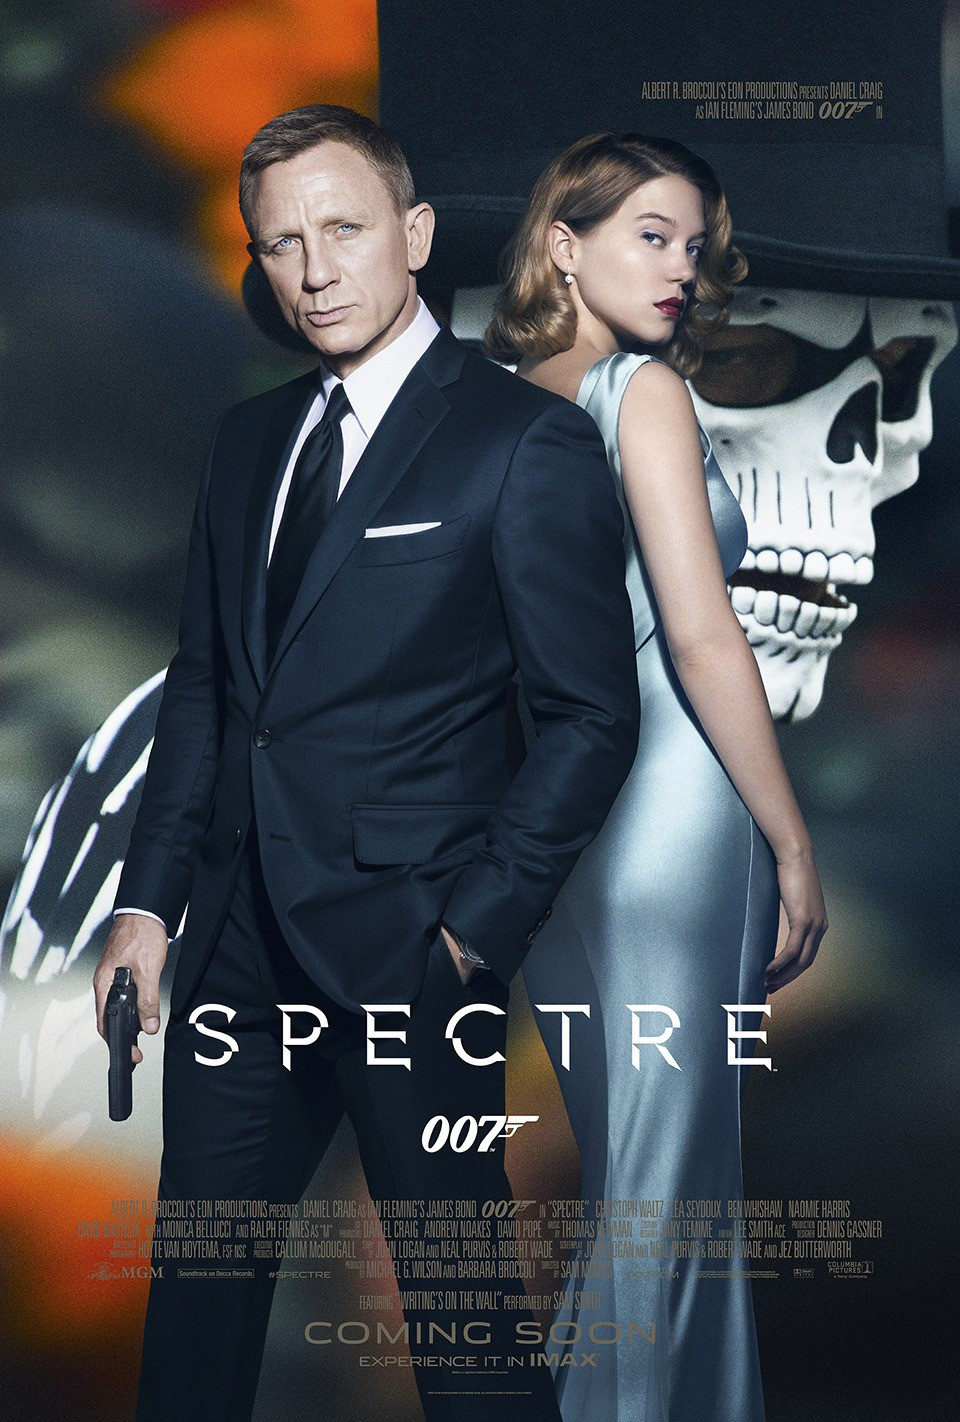 James_Bond_Movie-Spectre-Lea_Seydoux-Daniel_Craig-Poster.jpg